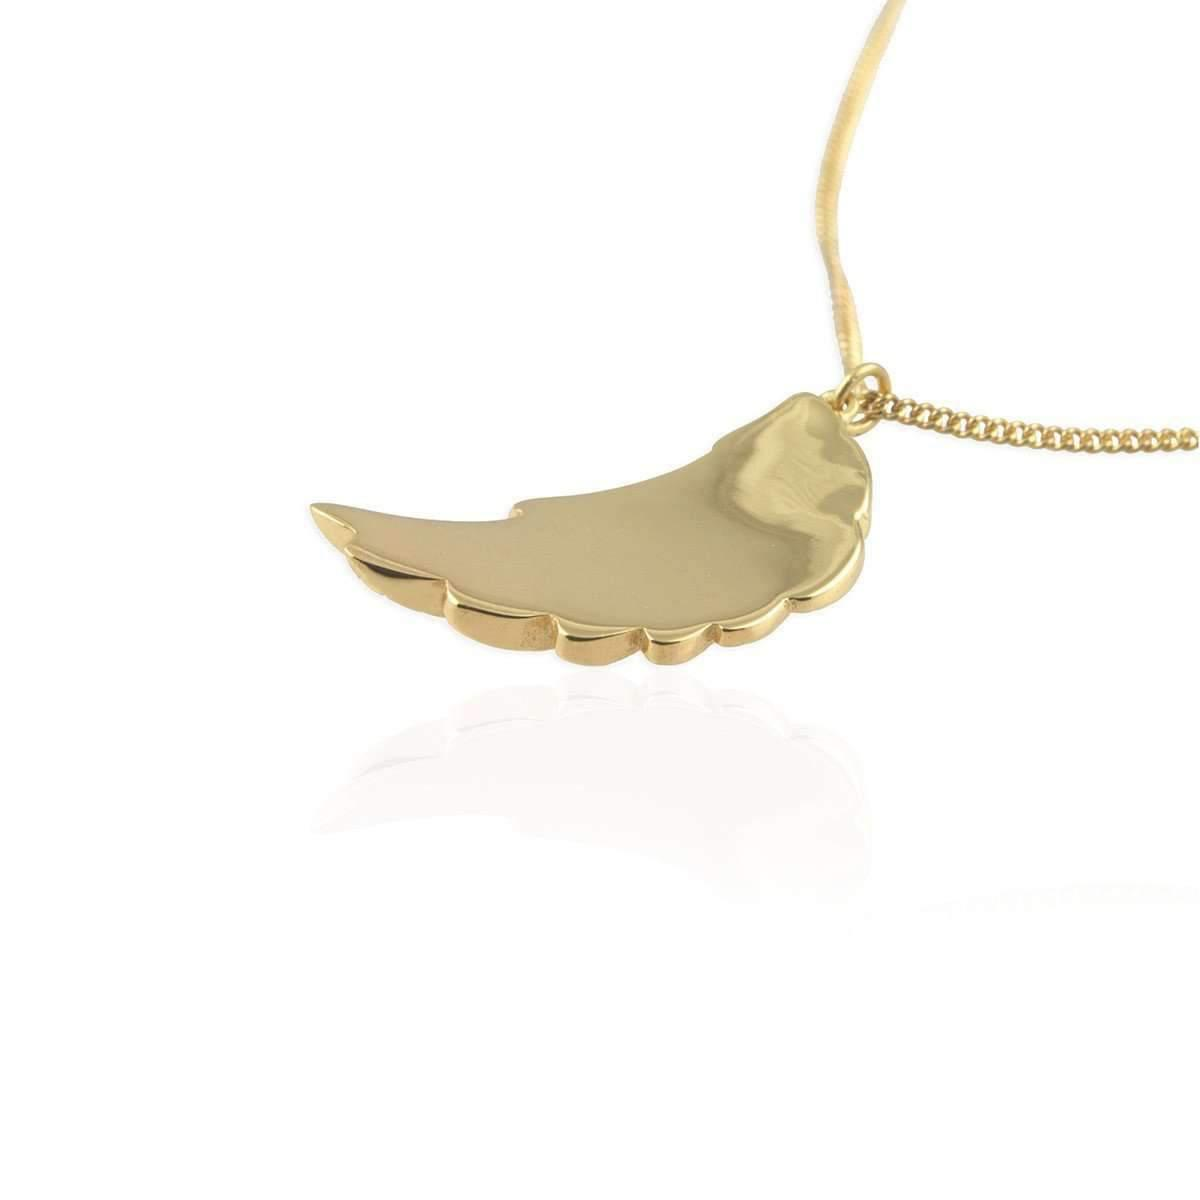 Jana Reinhardt Gold Plated Silver Wing Necklace - 42cm 5GSgtS